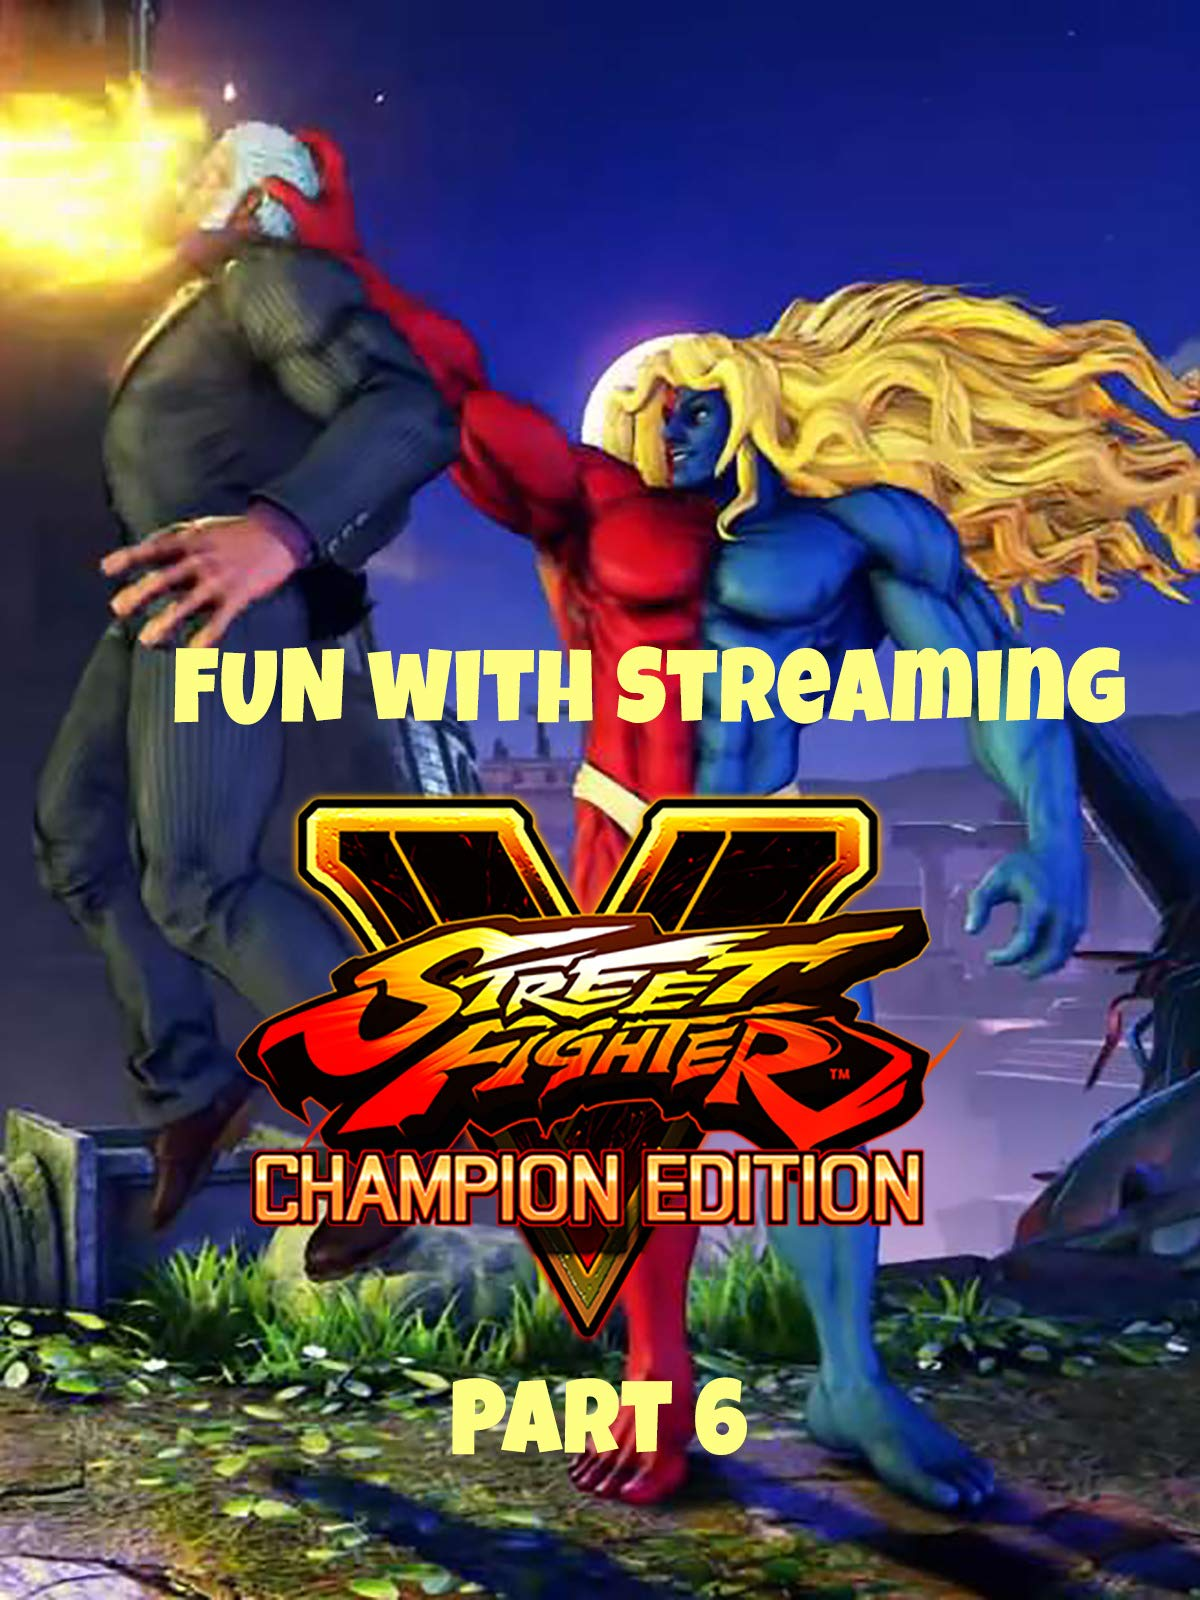 Clip: Fun with Streaming Street Fighter V Champion Edition Part 6 on Amazon Prime Video UK